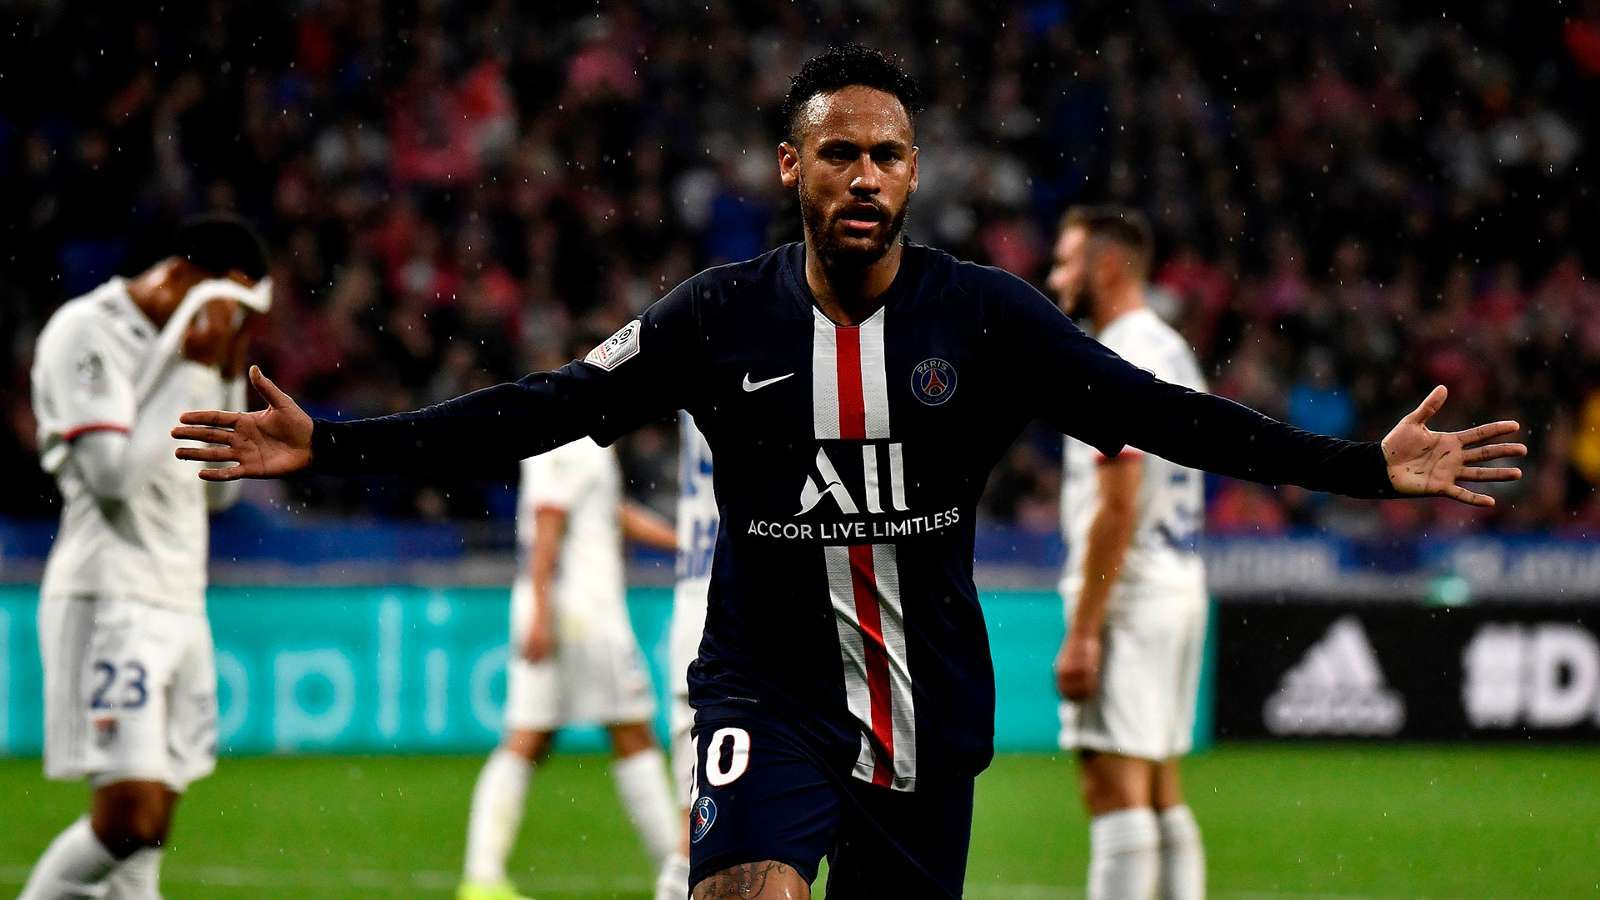 Neymar Says It S Time To Grow Up I Have Messed Up Many Times Neymar Psg Paris Saint